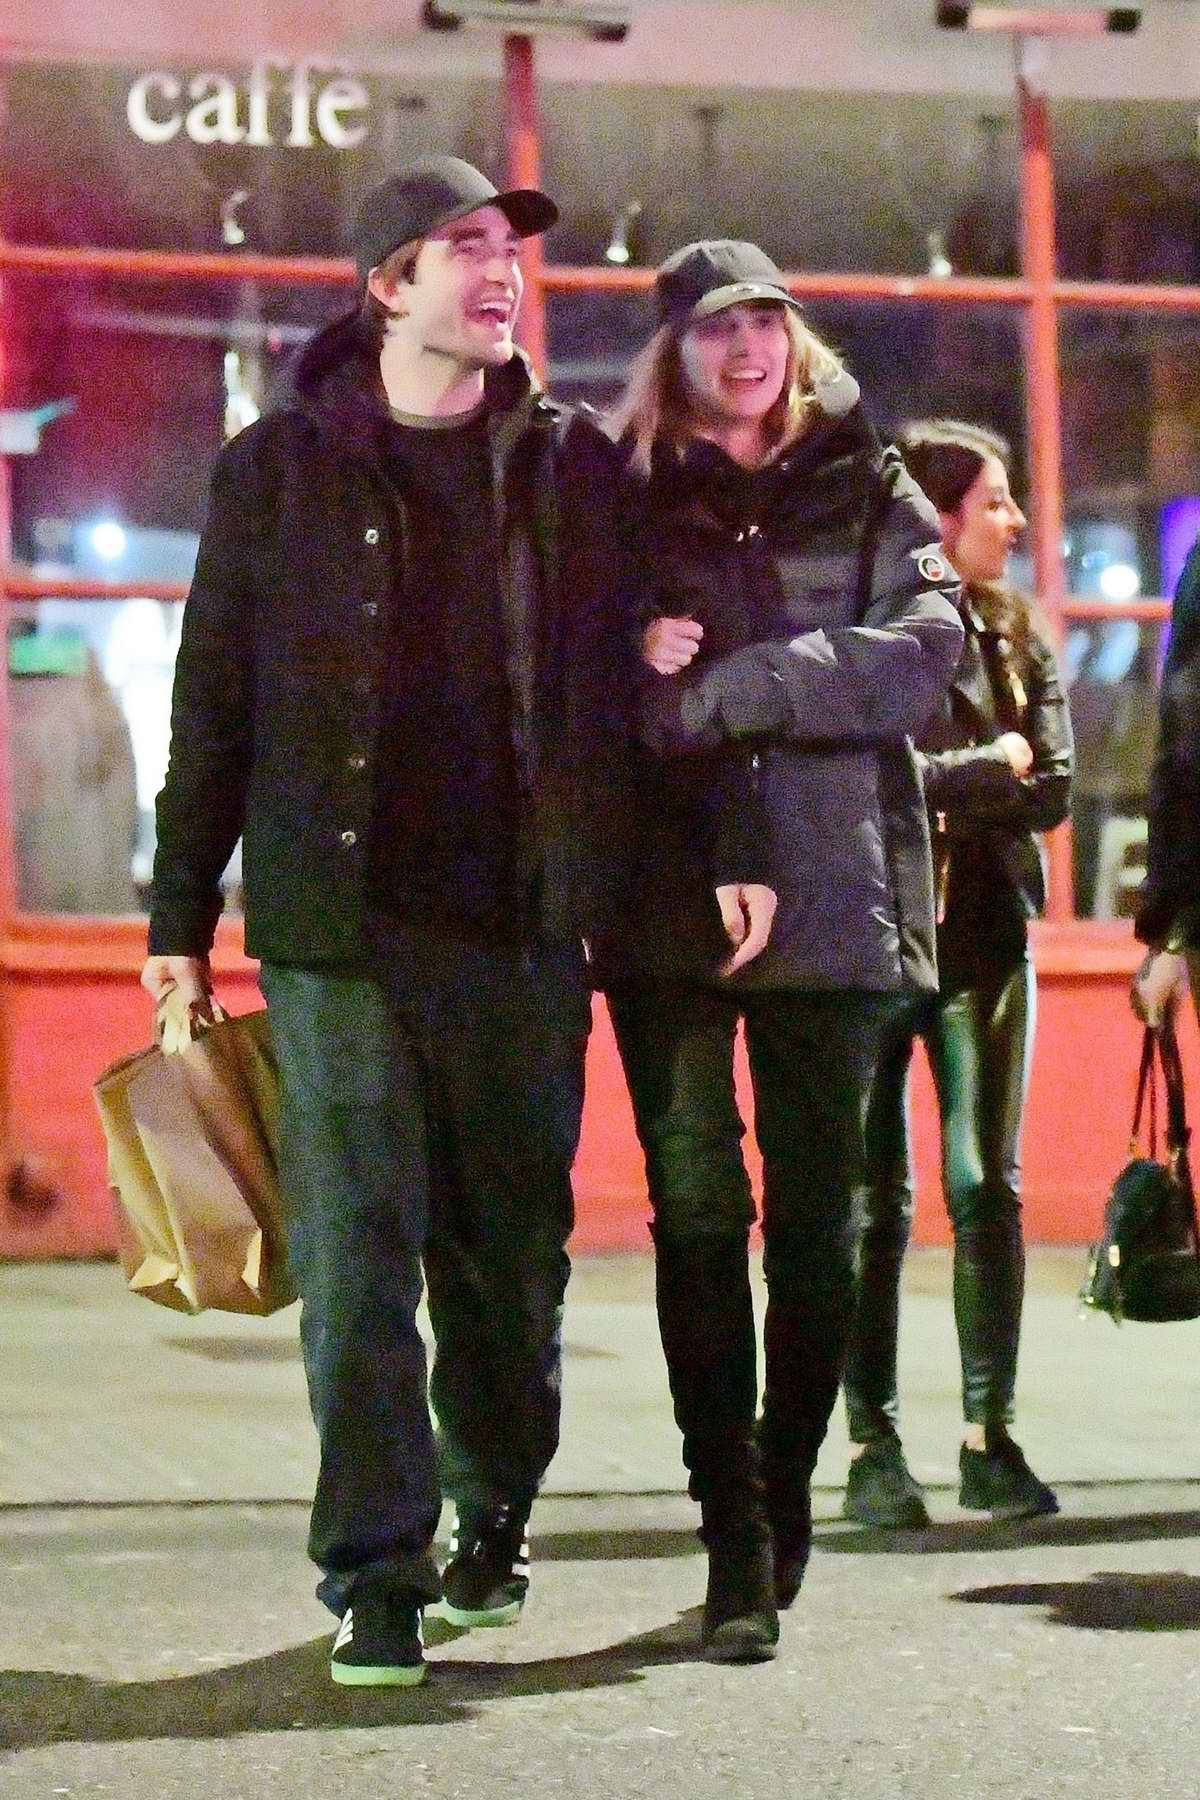 Suki Waterhouse and Robert Pattinson are all smiles as they step out for some shopping in London, UK